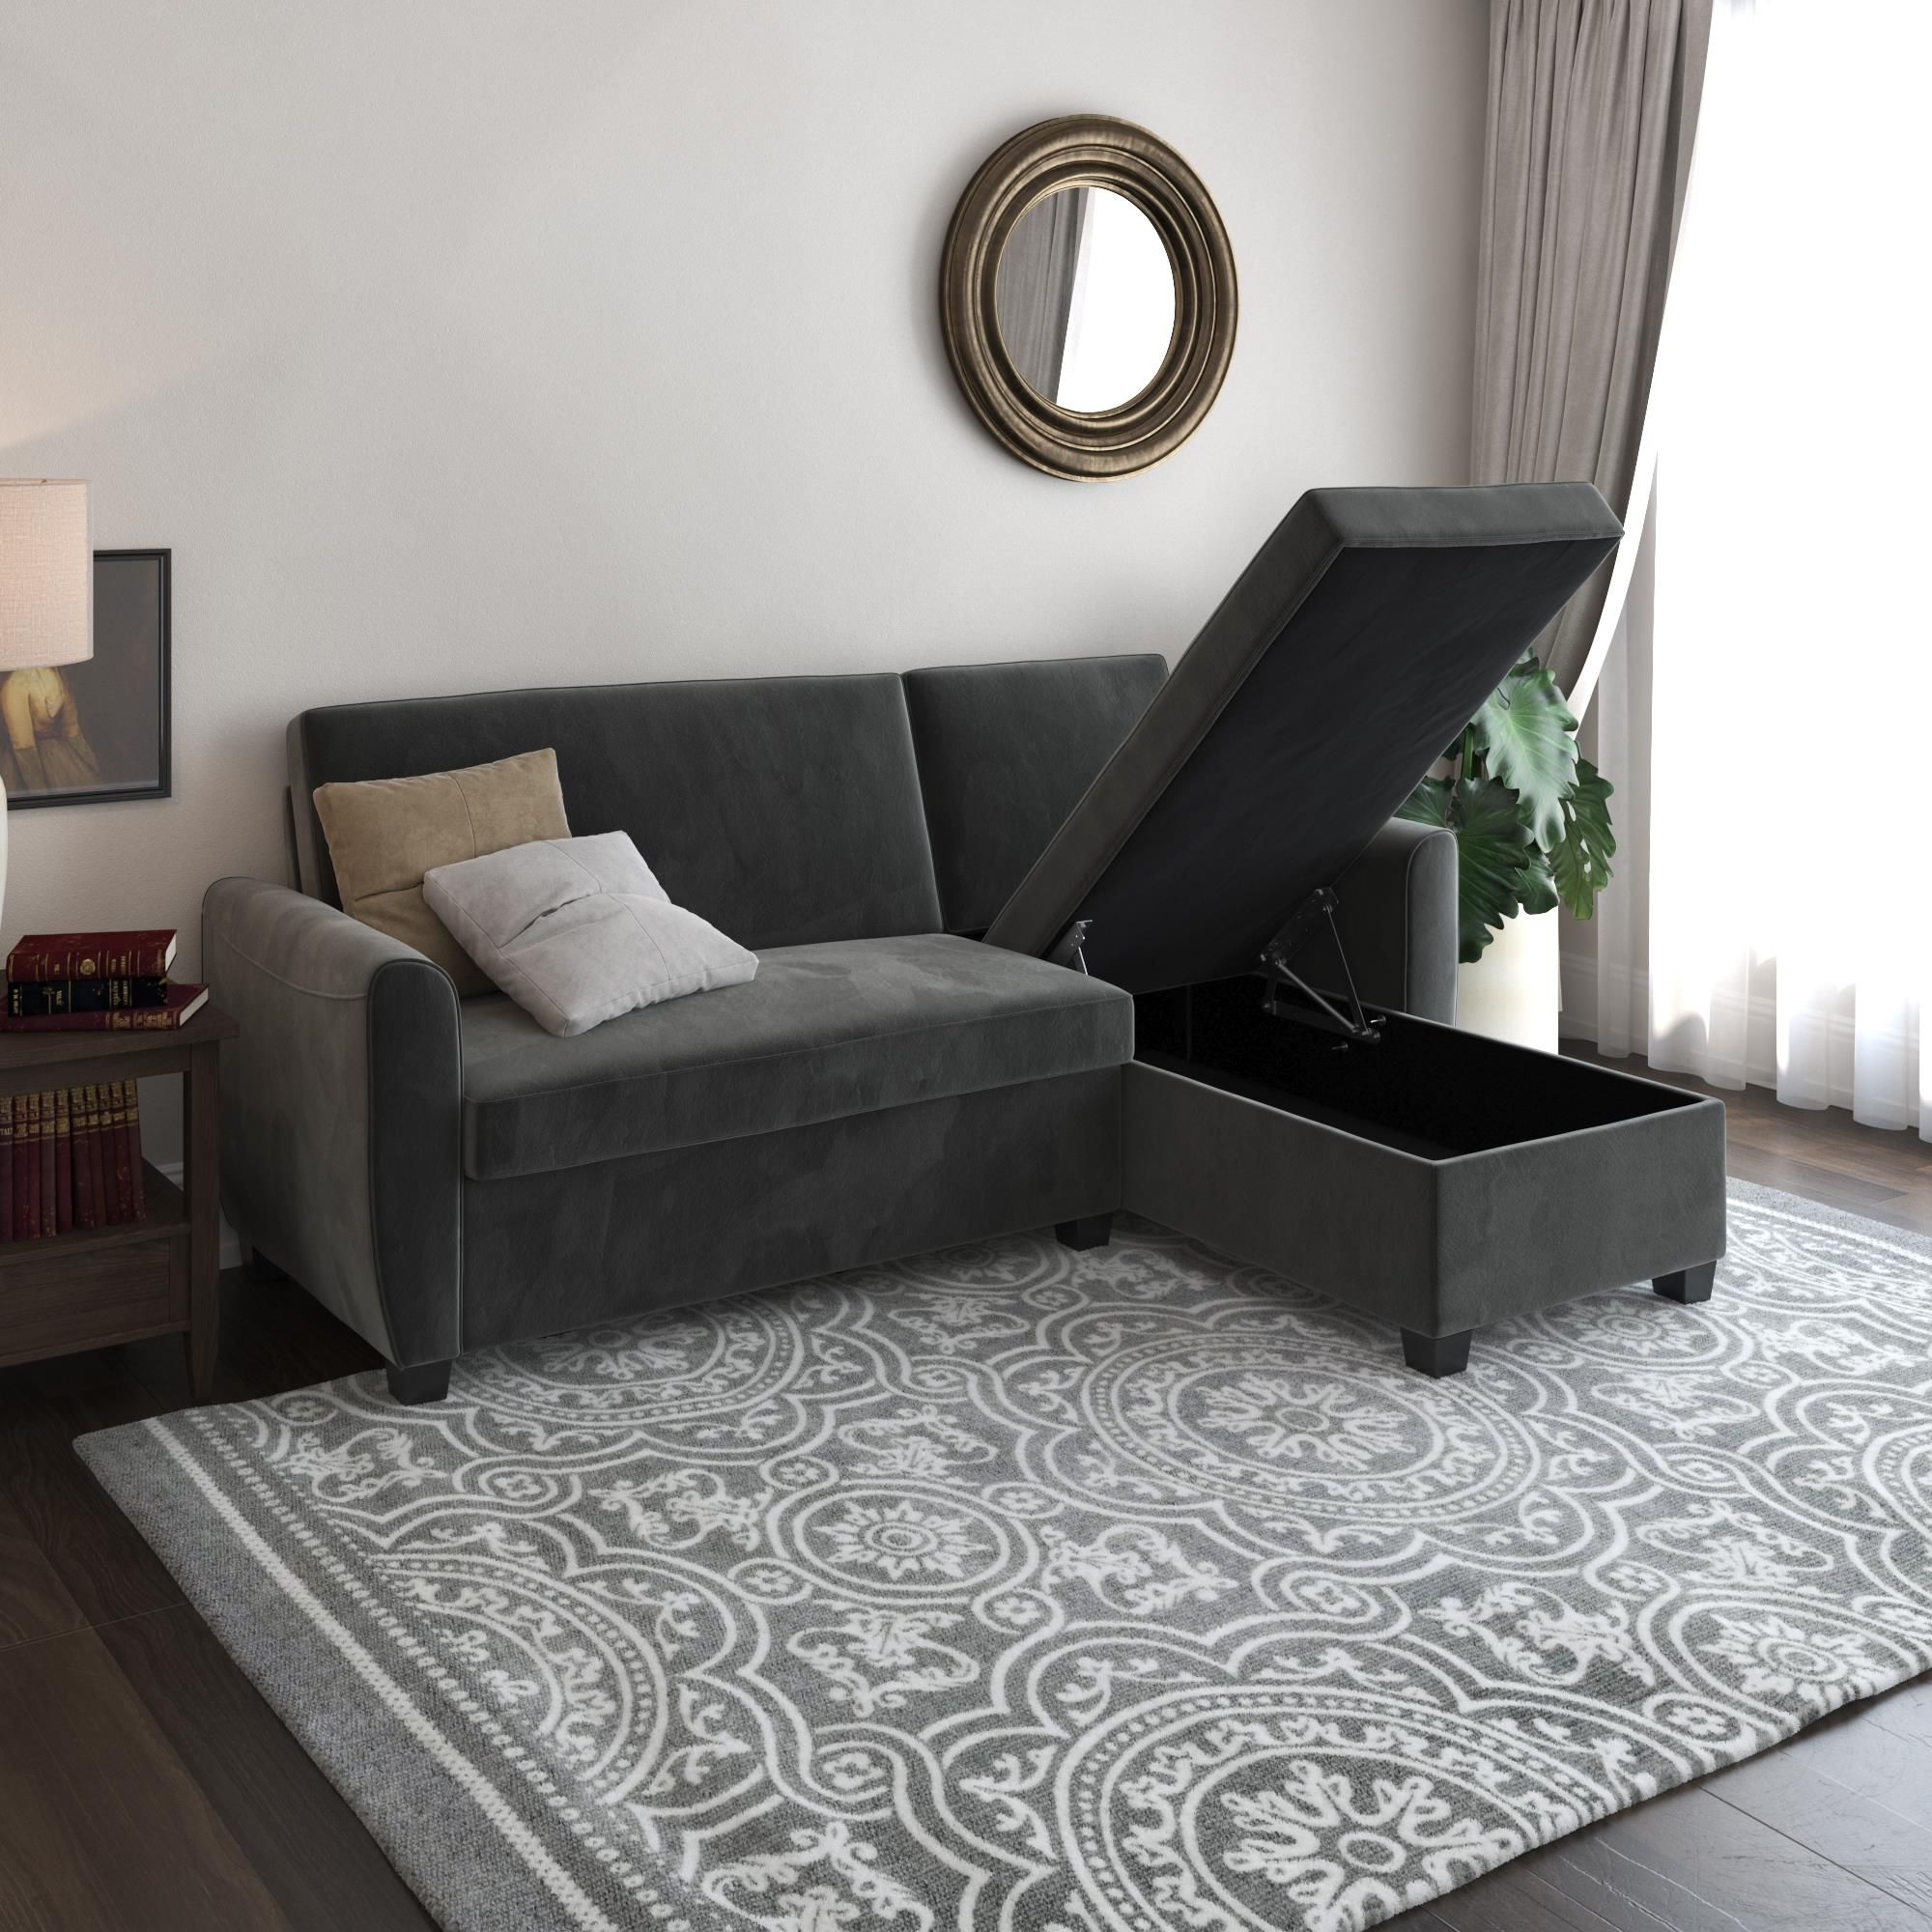 Home In 2020 Sofa Bed With Storage Sectional Sofa Twin Bed Frame